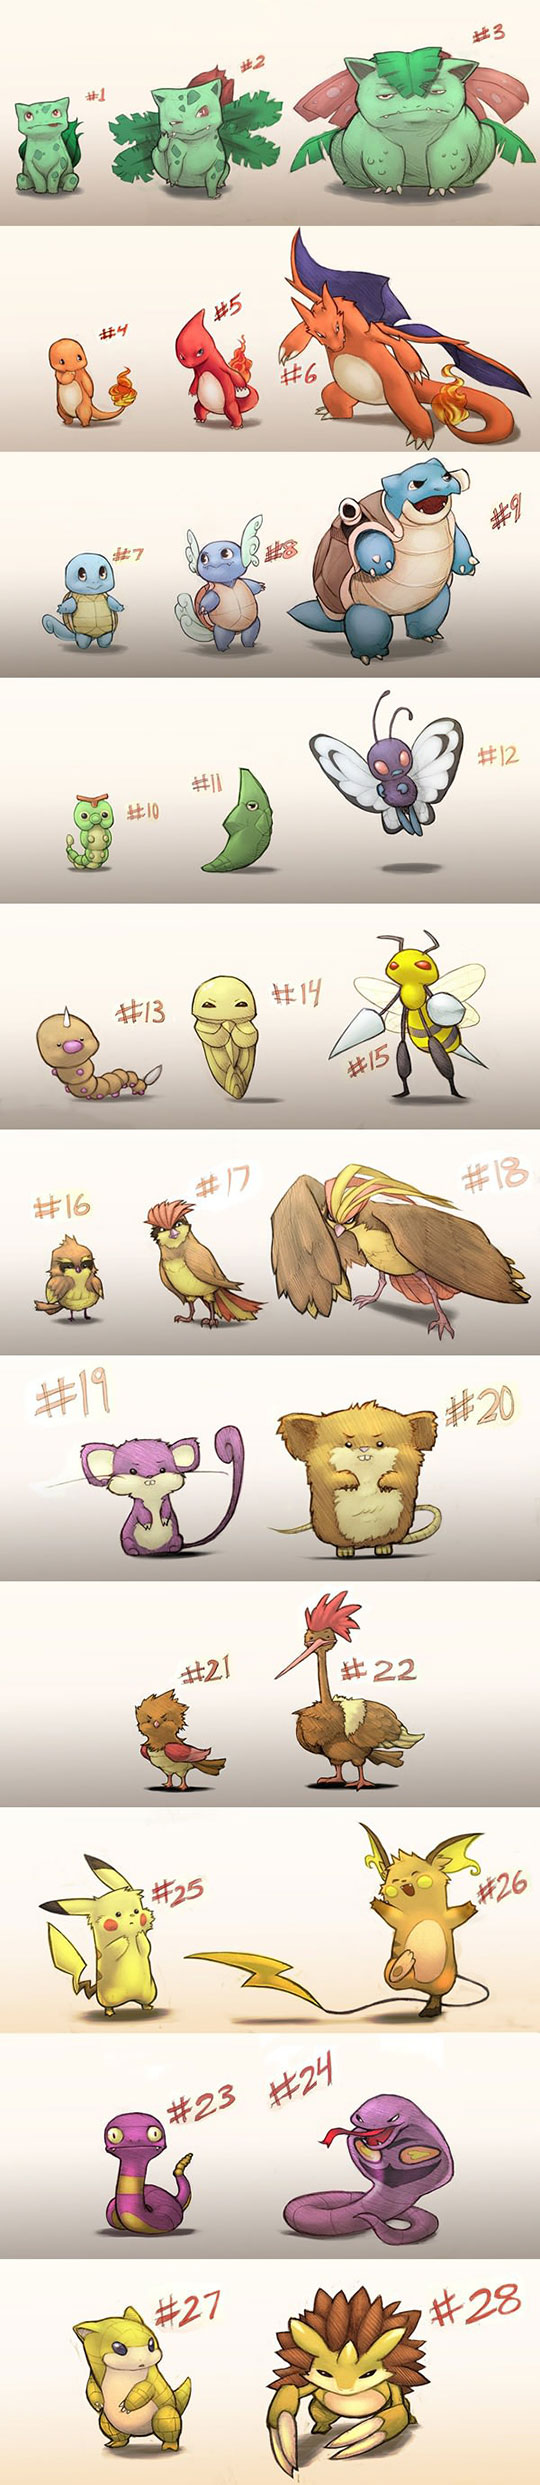 funny-Pokemon-drawing-evolutions-personalities